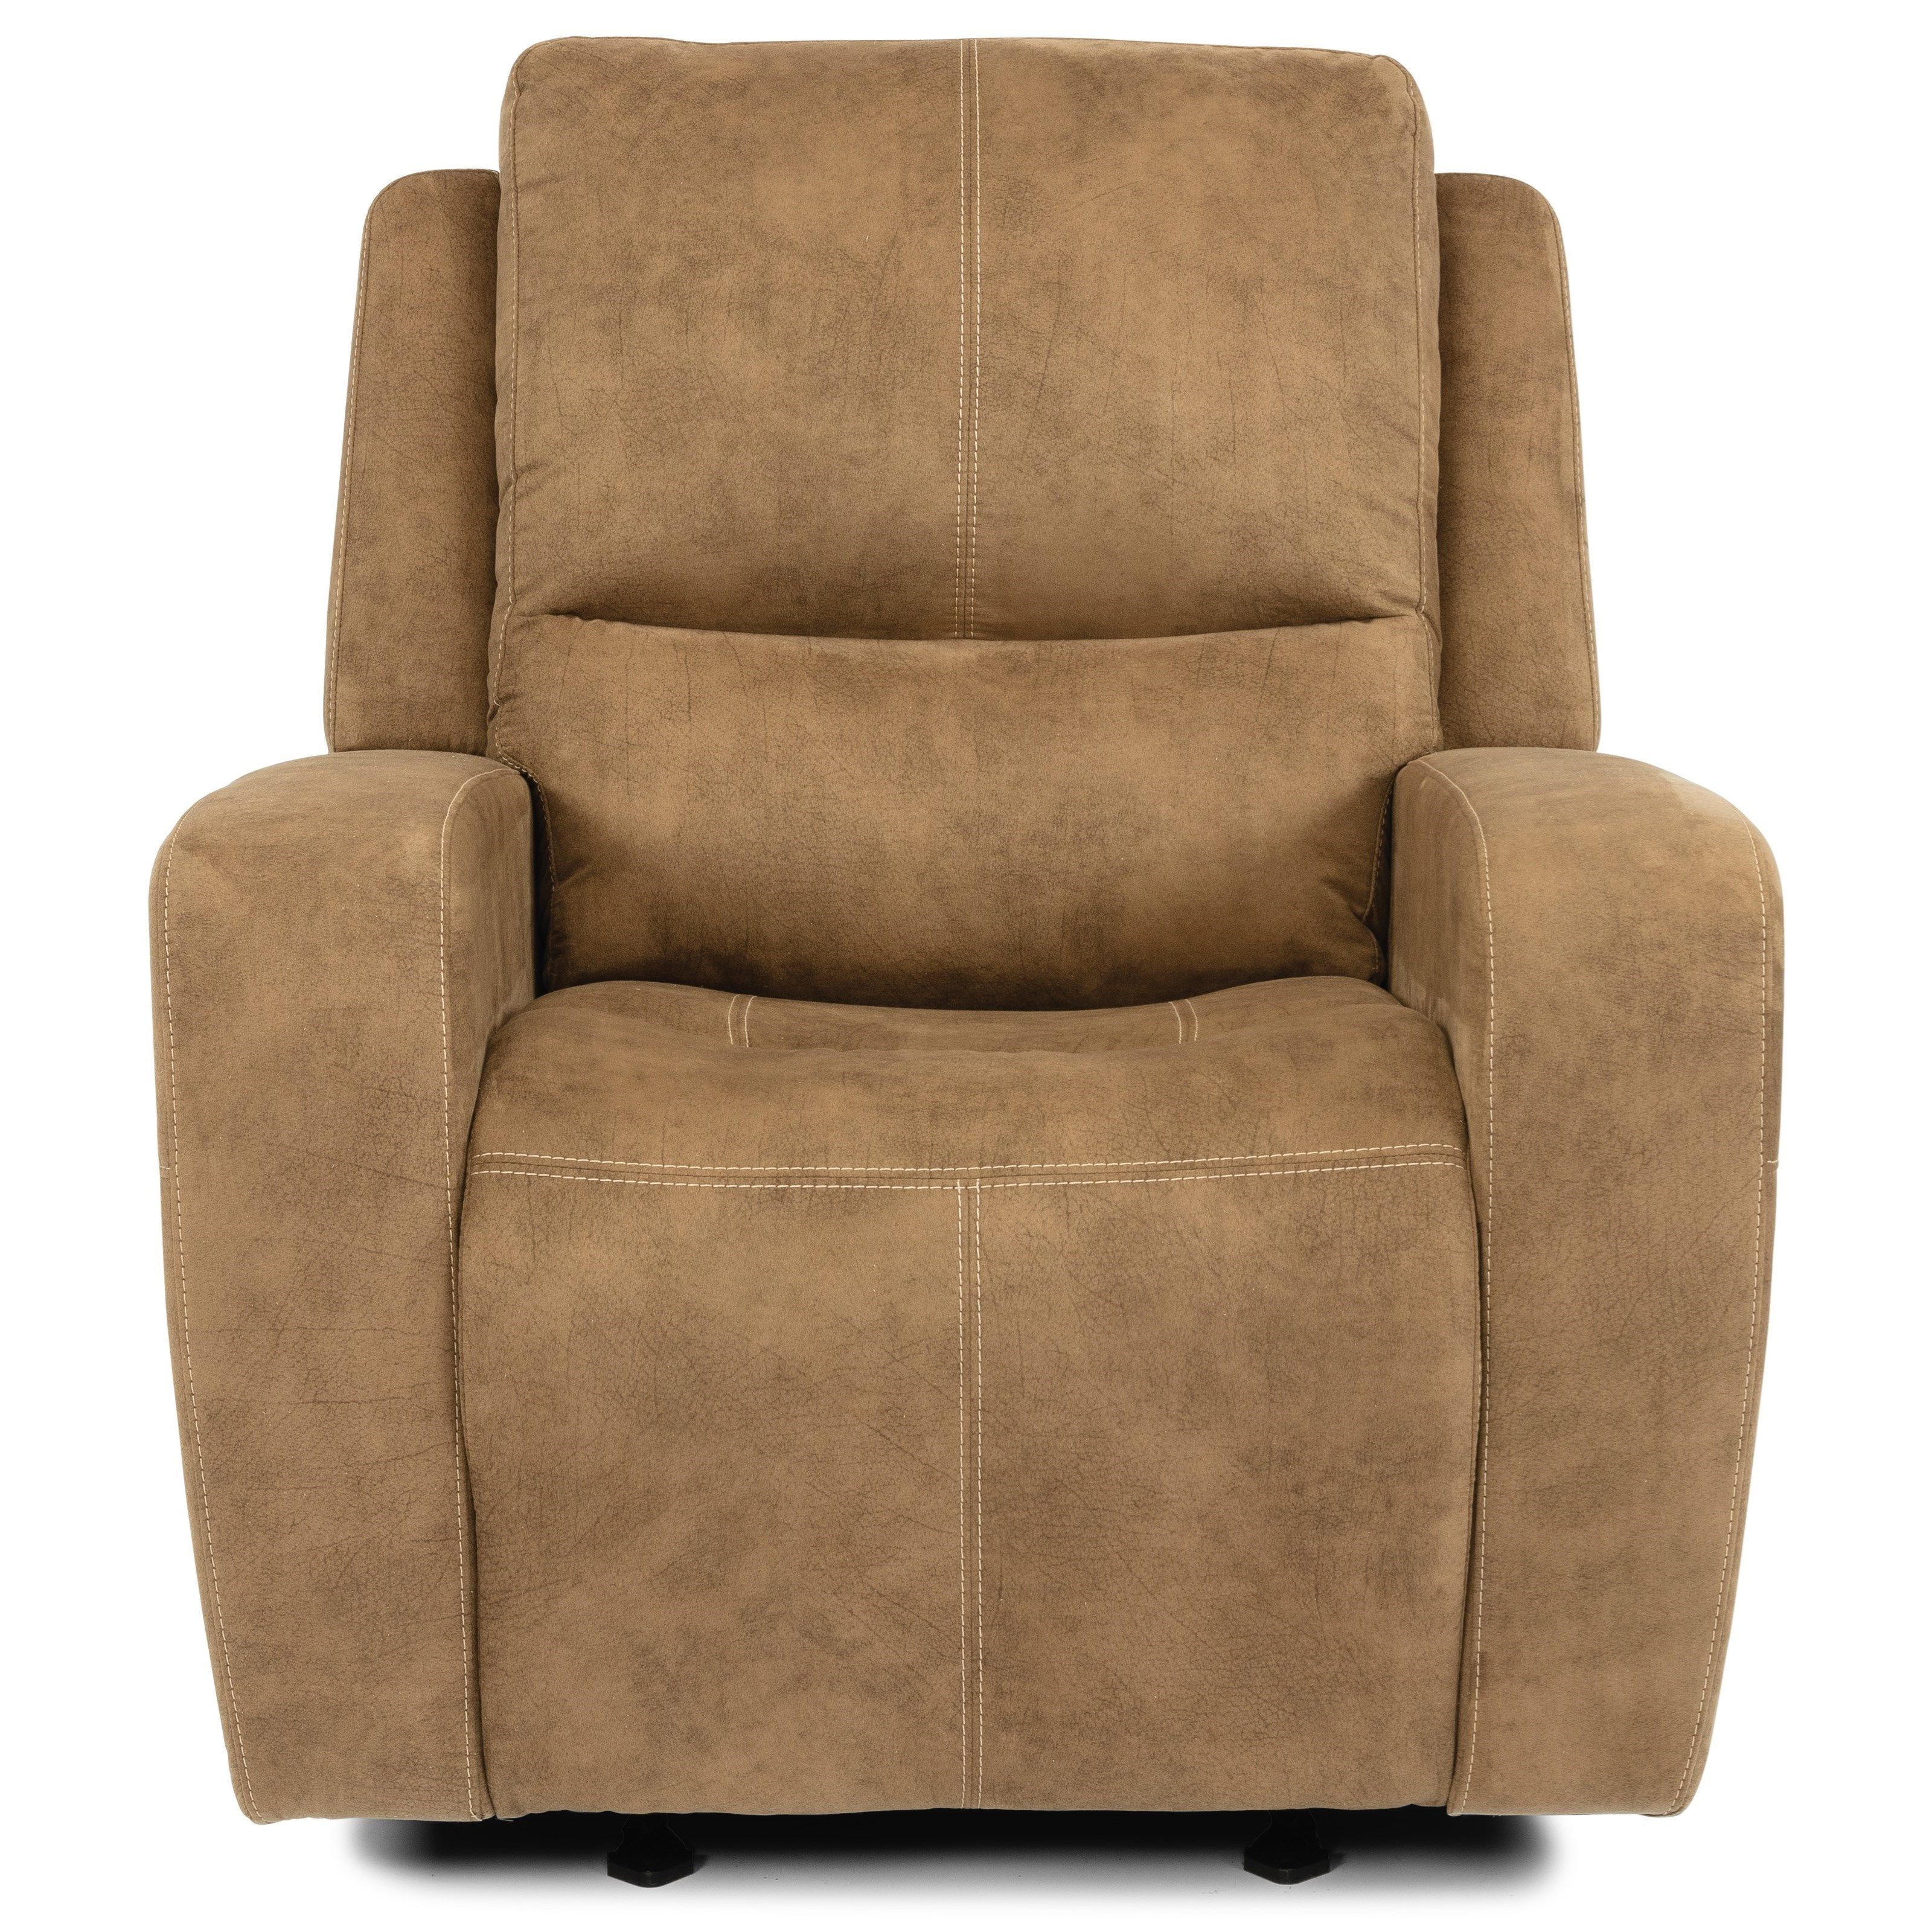 Transitional Power Gliding Recliner with Power Headrest